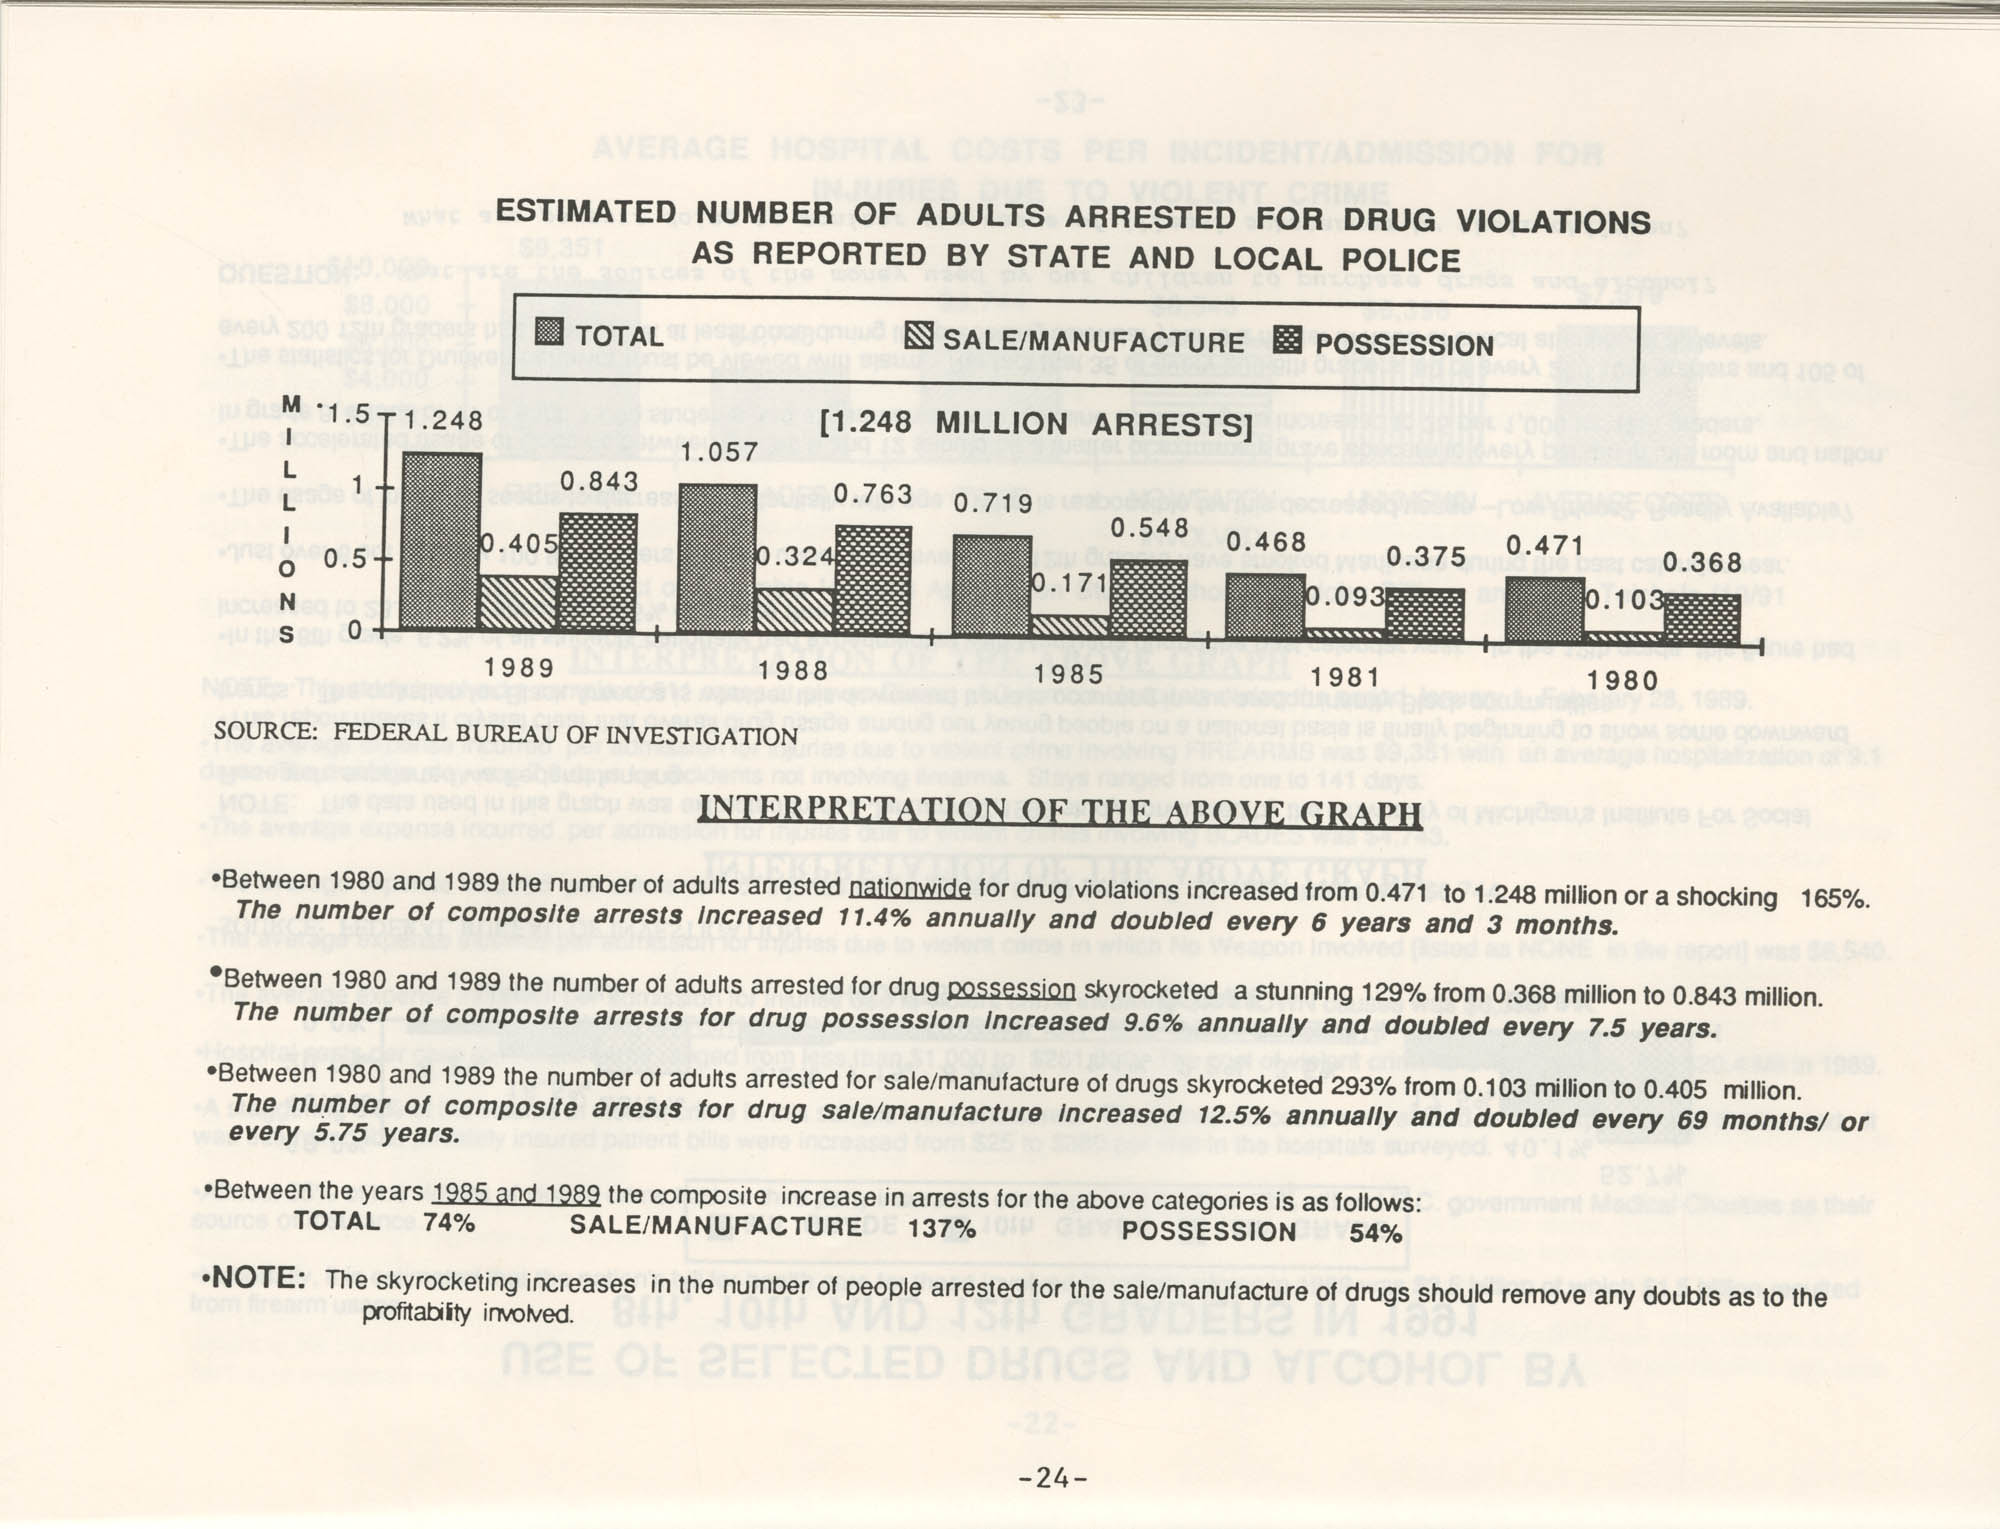 Crime and Criminal Activities in the U.S.A., NAACP National Board of Directors, Page 24